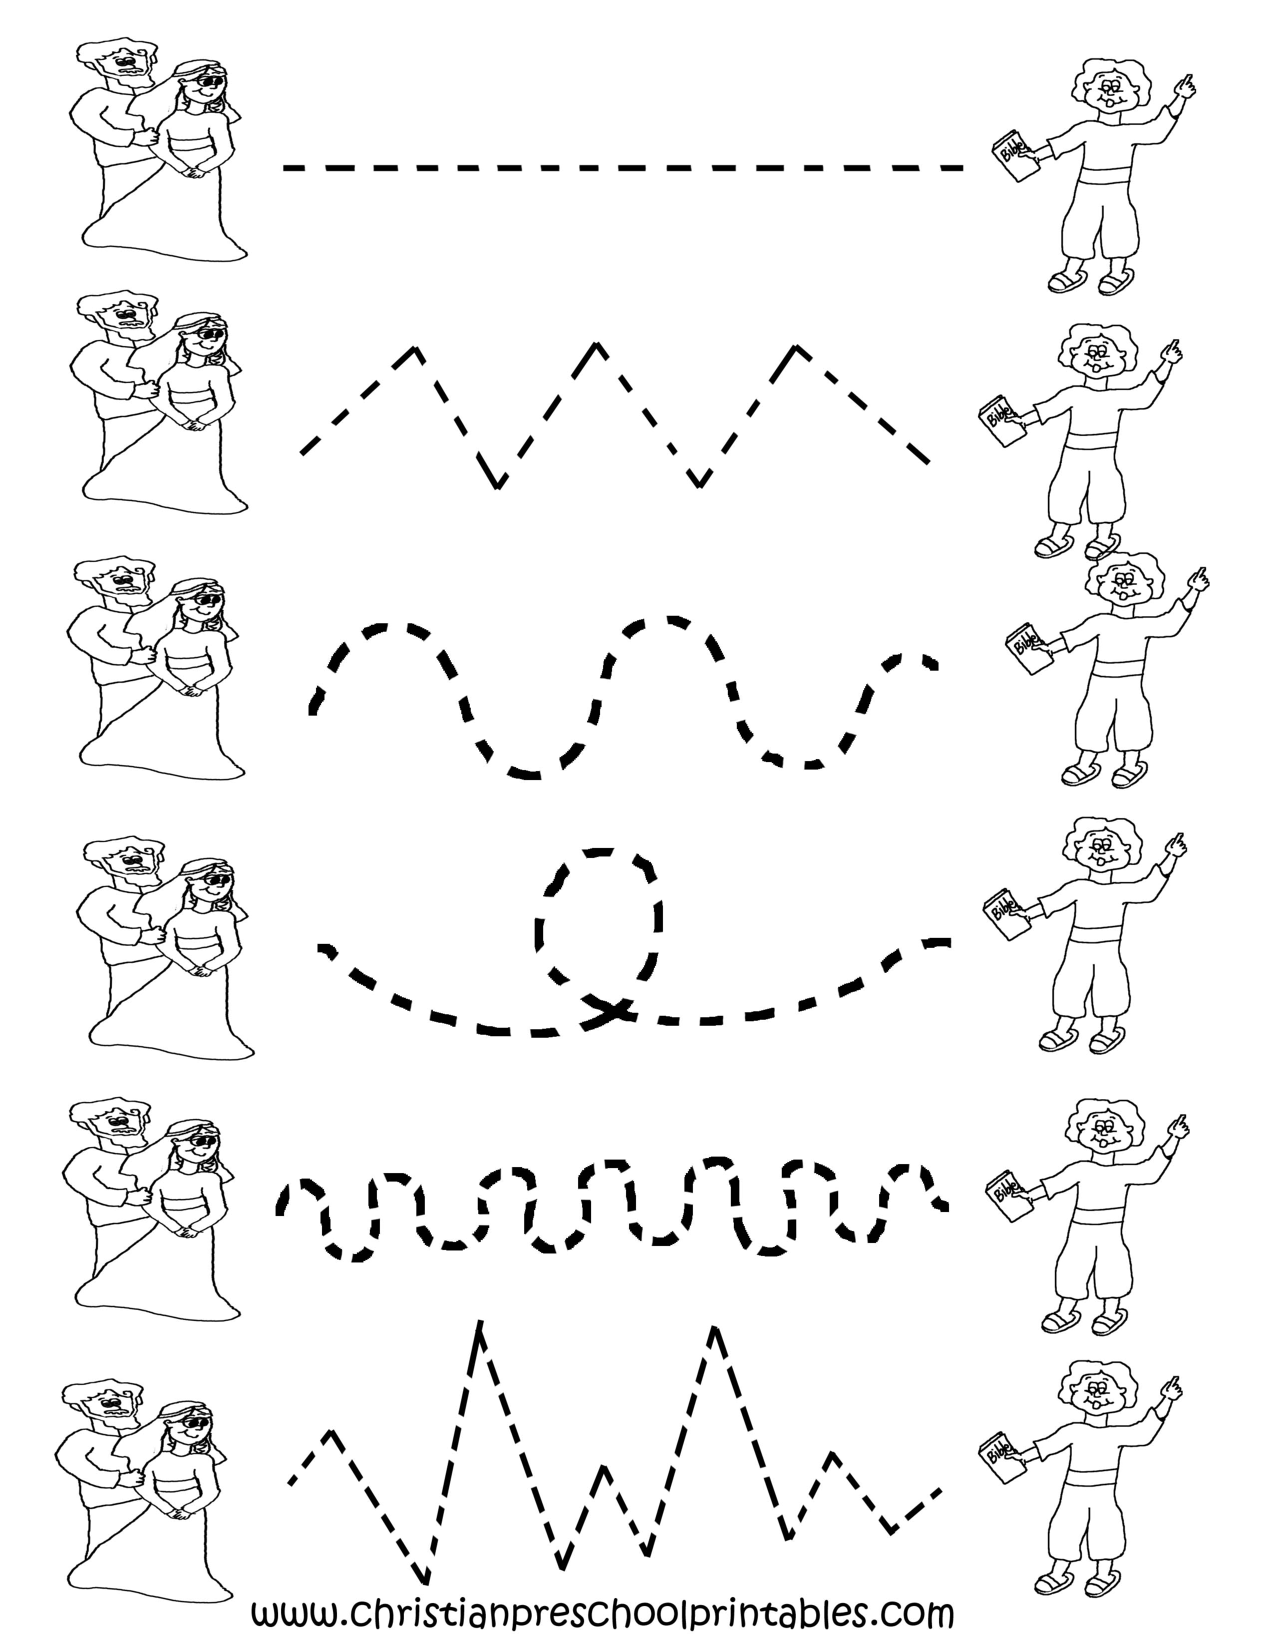 free printable worksheets for preschool preschool tracing worksheets